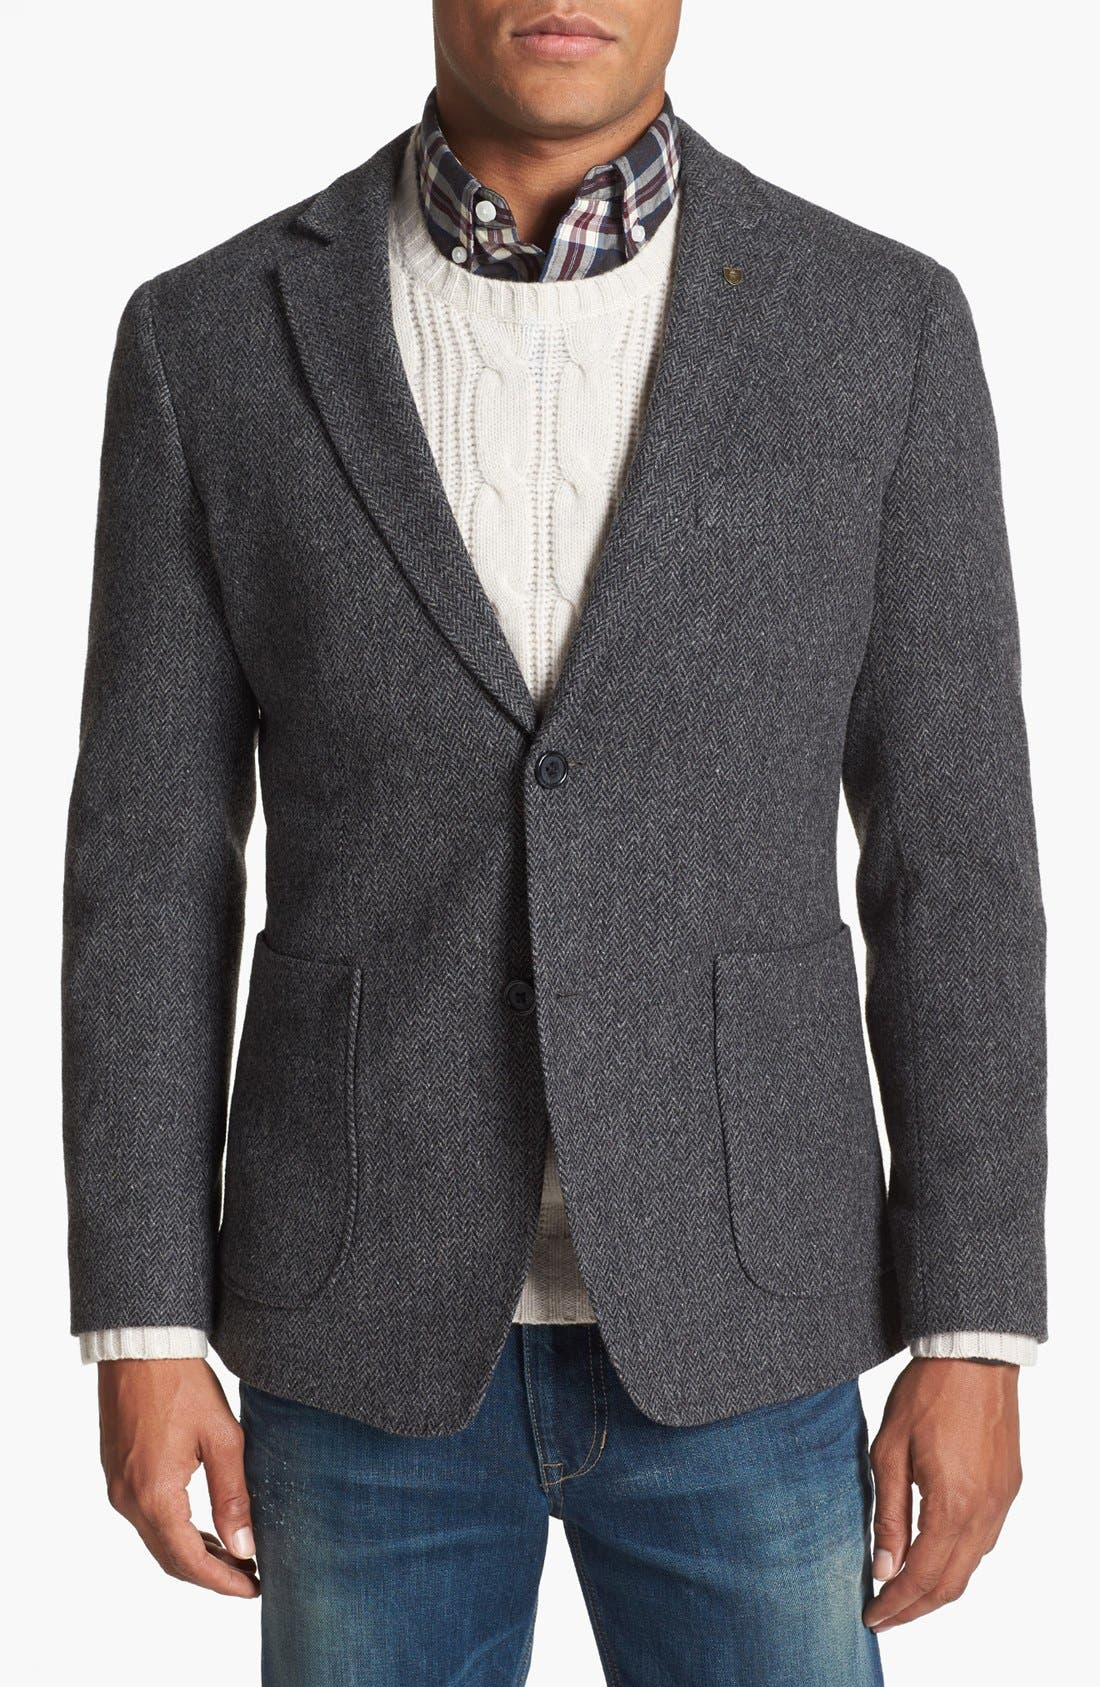 Alternate Image 1 Selected - Wallin & Bros. Extra Trim Fit Herringbone Sportcoat